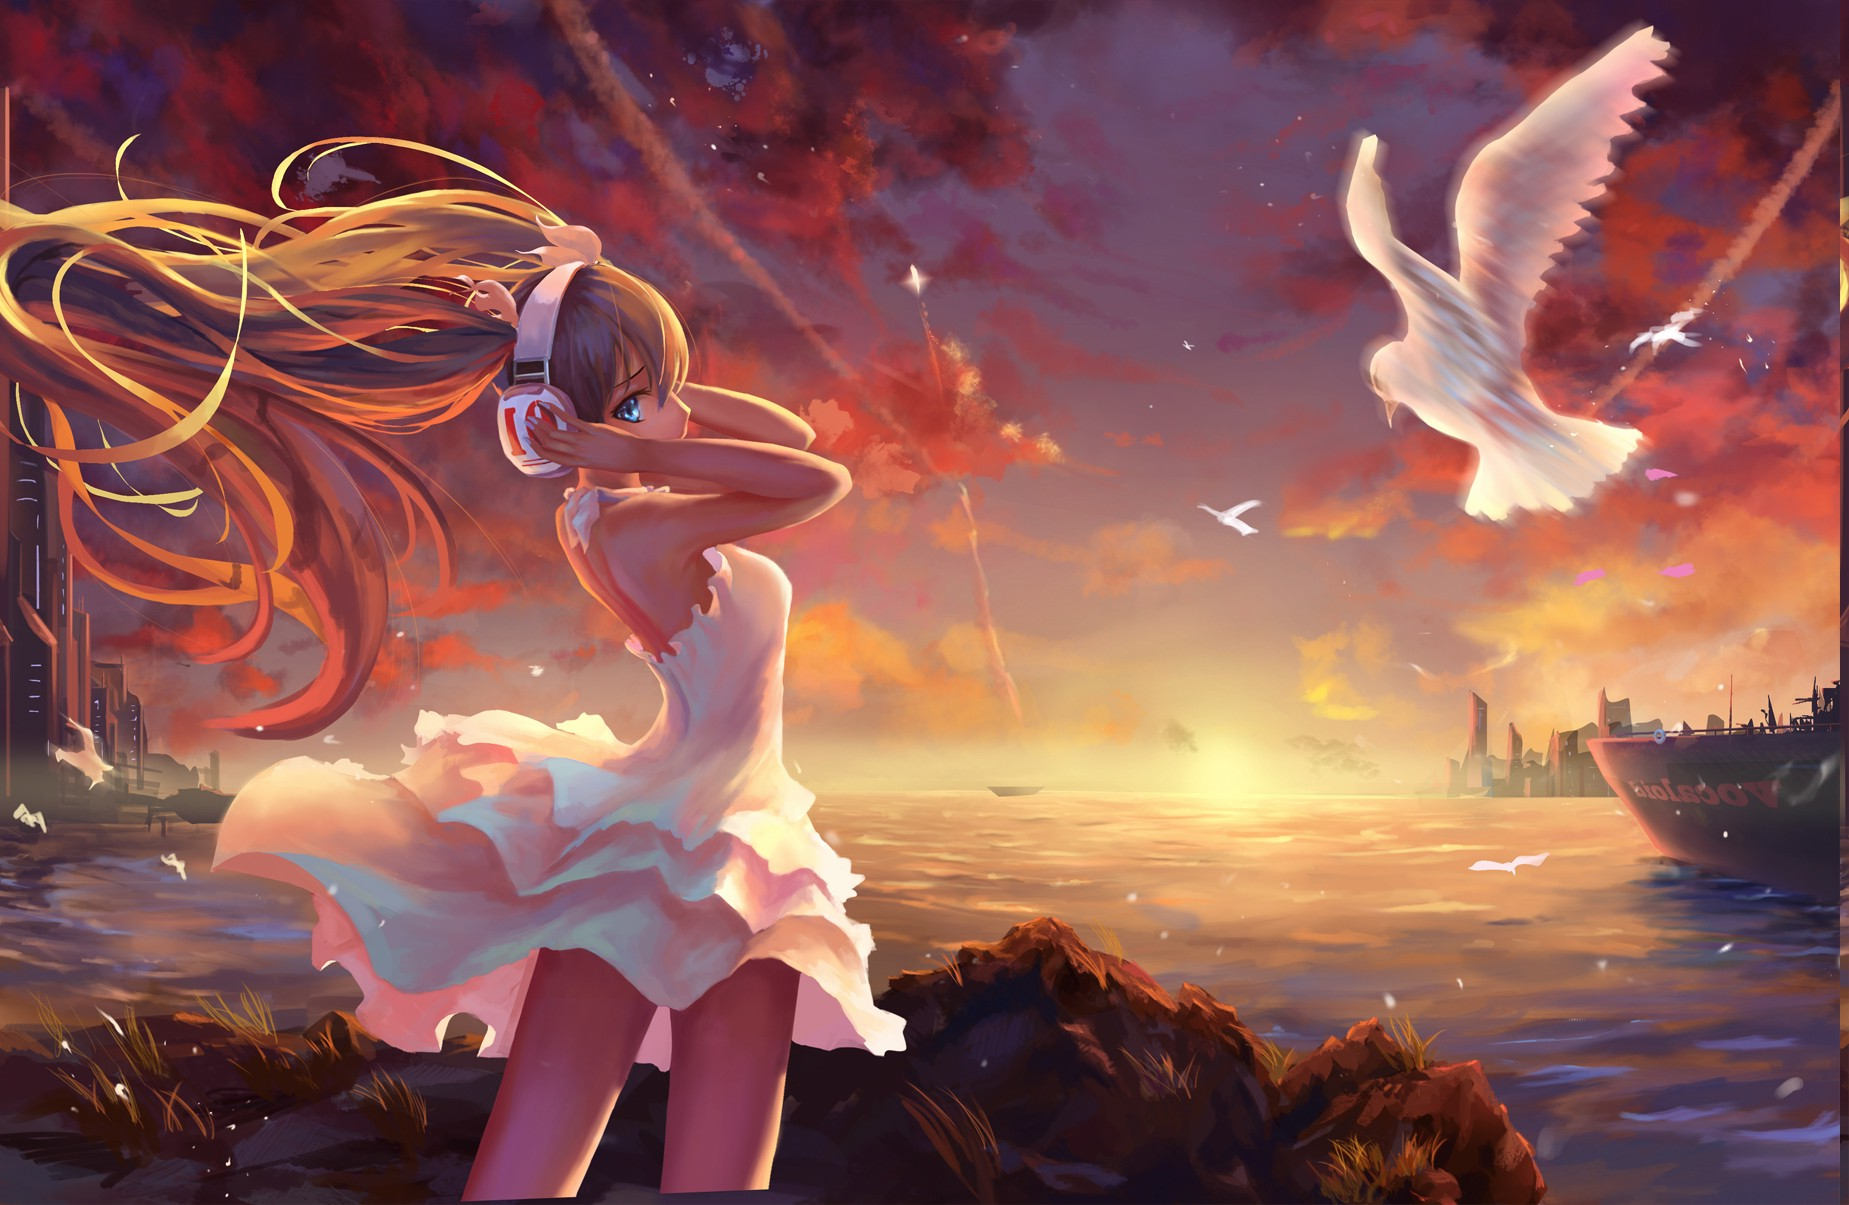 Fall Anime Wallpaper Vocaloid Anime Girls Landscape Painting Twintails Vocaloid